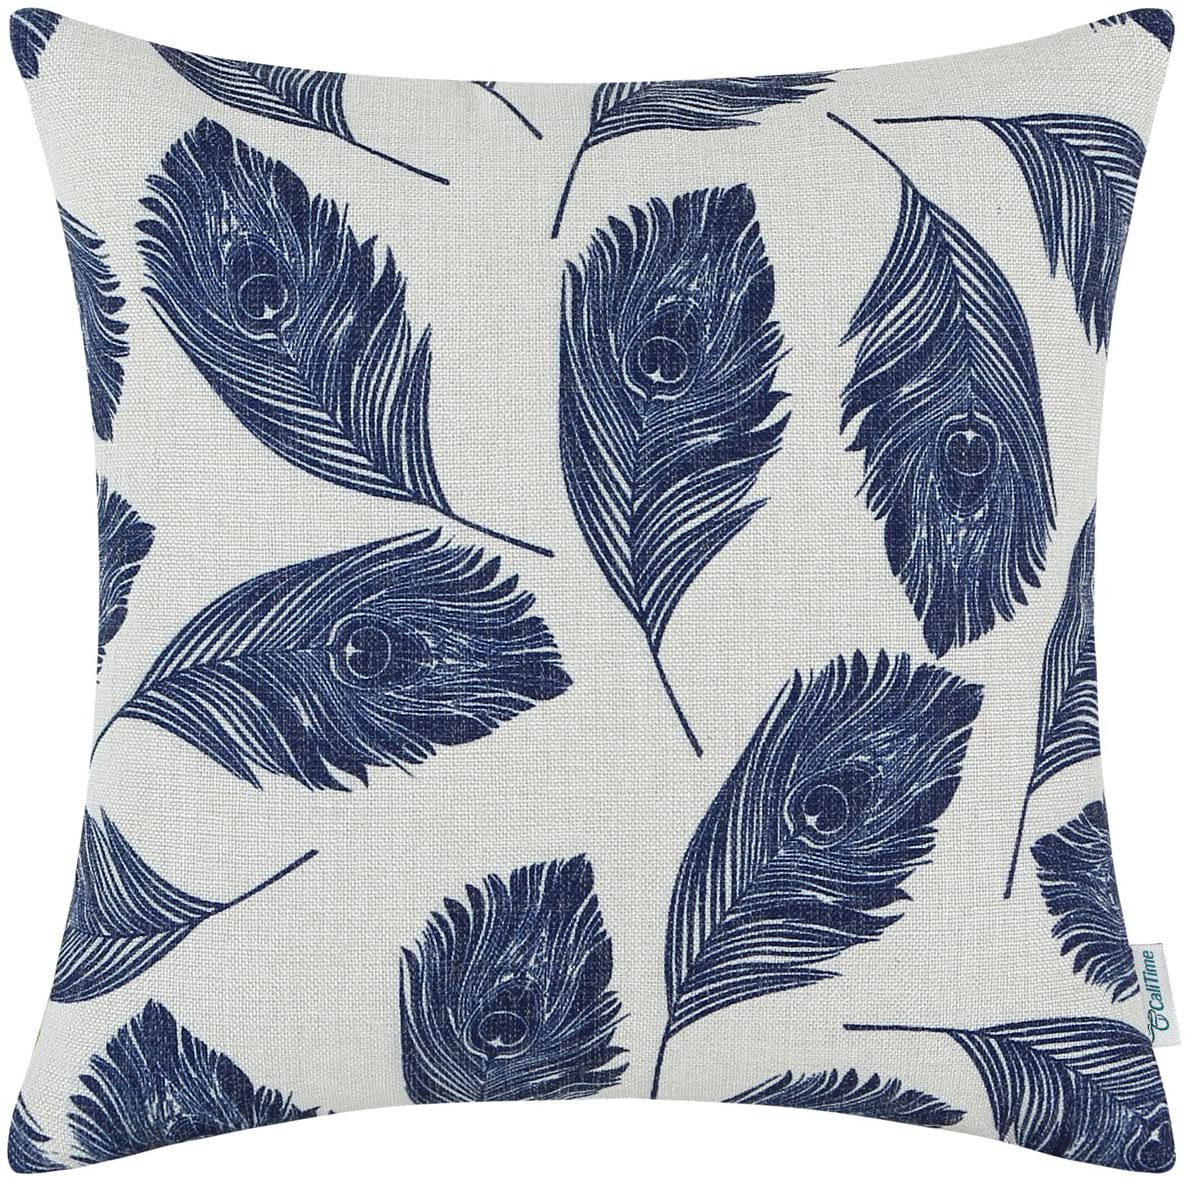 CaliTime Canvas Throw Pillow Cover Case for Couch Sofa Home Decoration Peacock Feathers 16 X 16 Inches Navy Blue